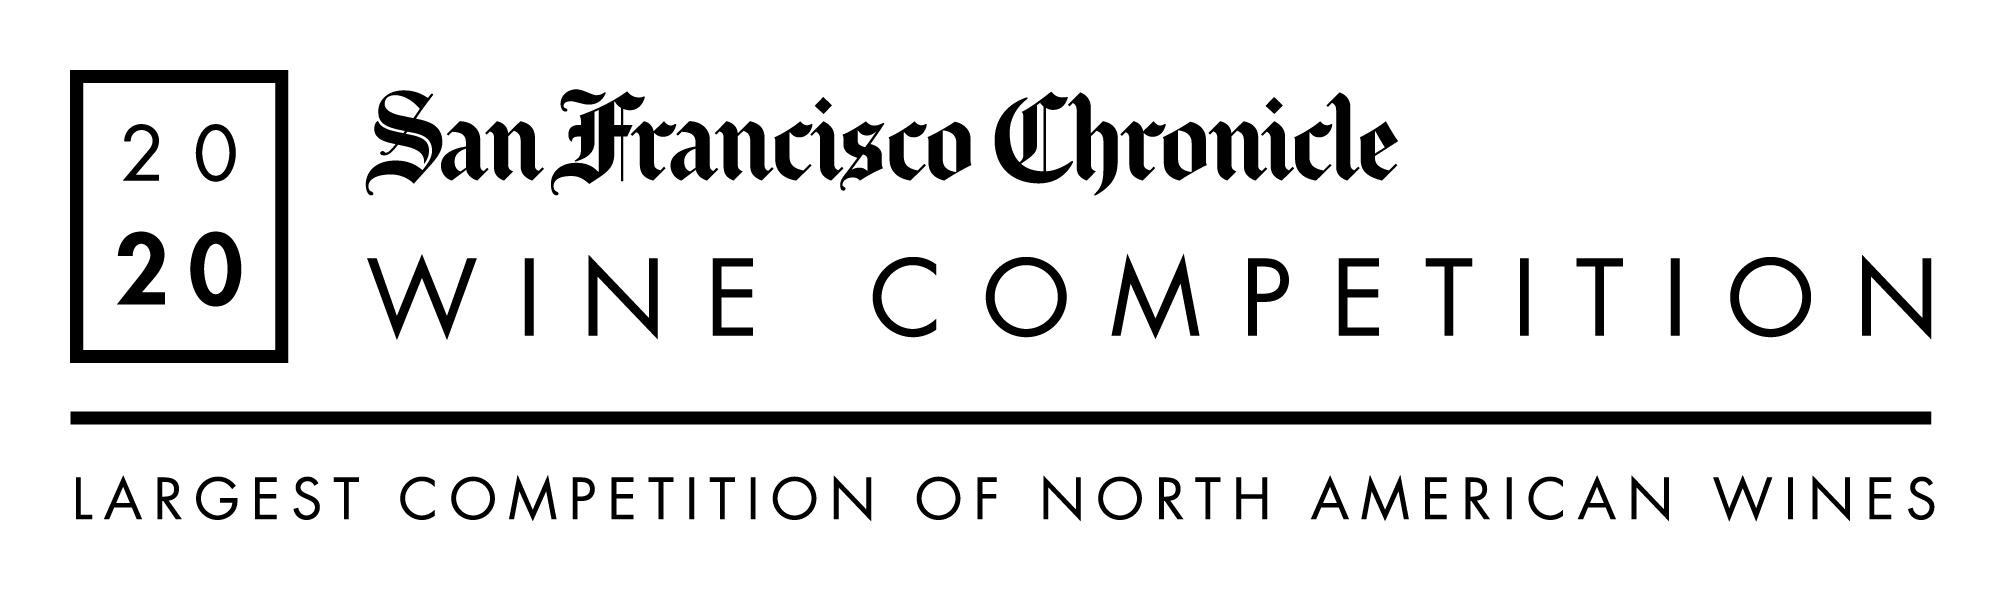 san francisco chronicle wine competition 2020 logo potluck consulting client